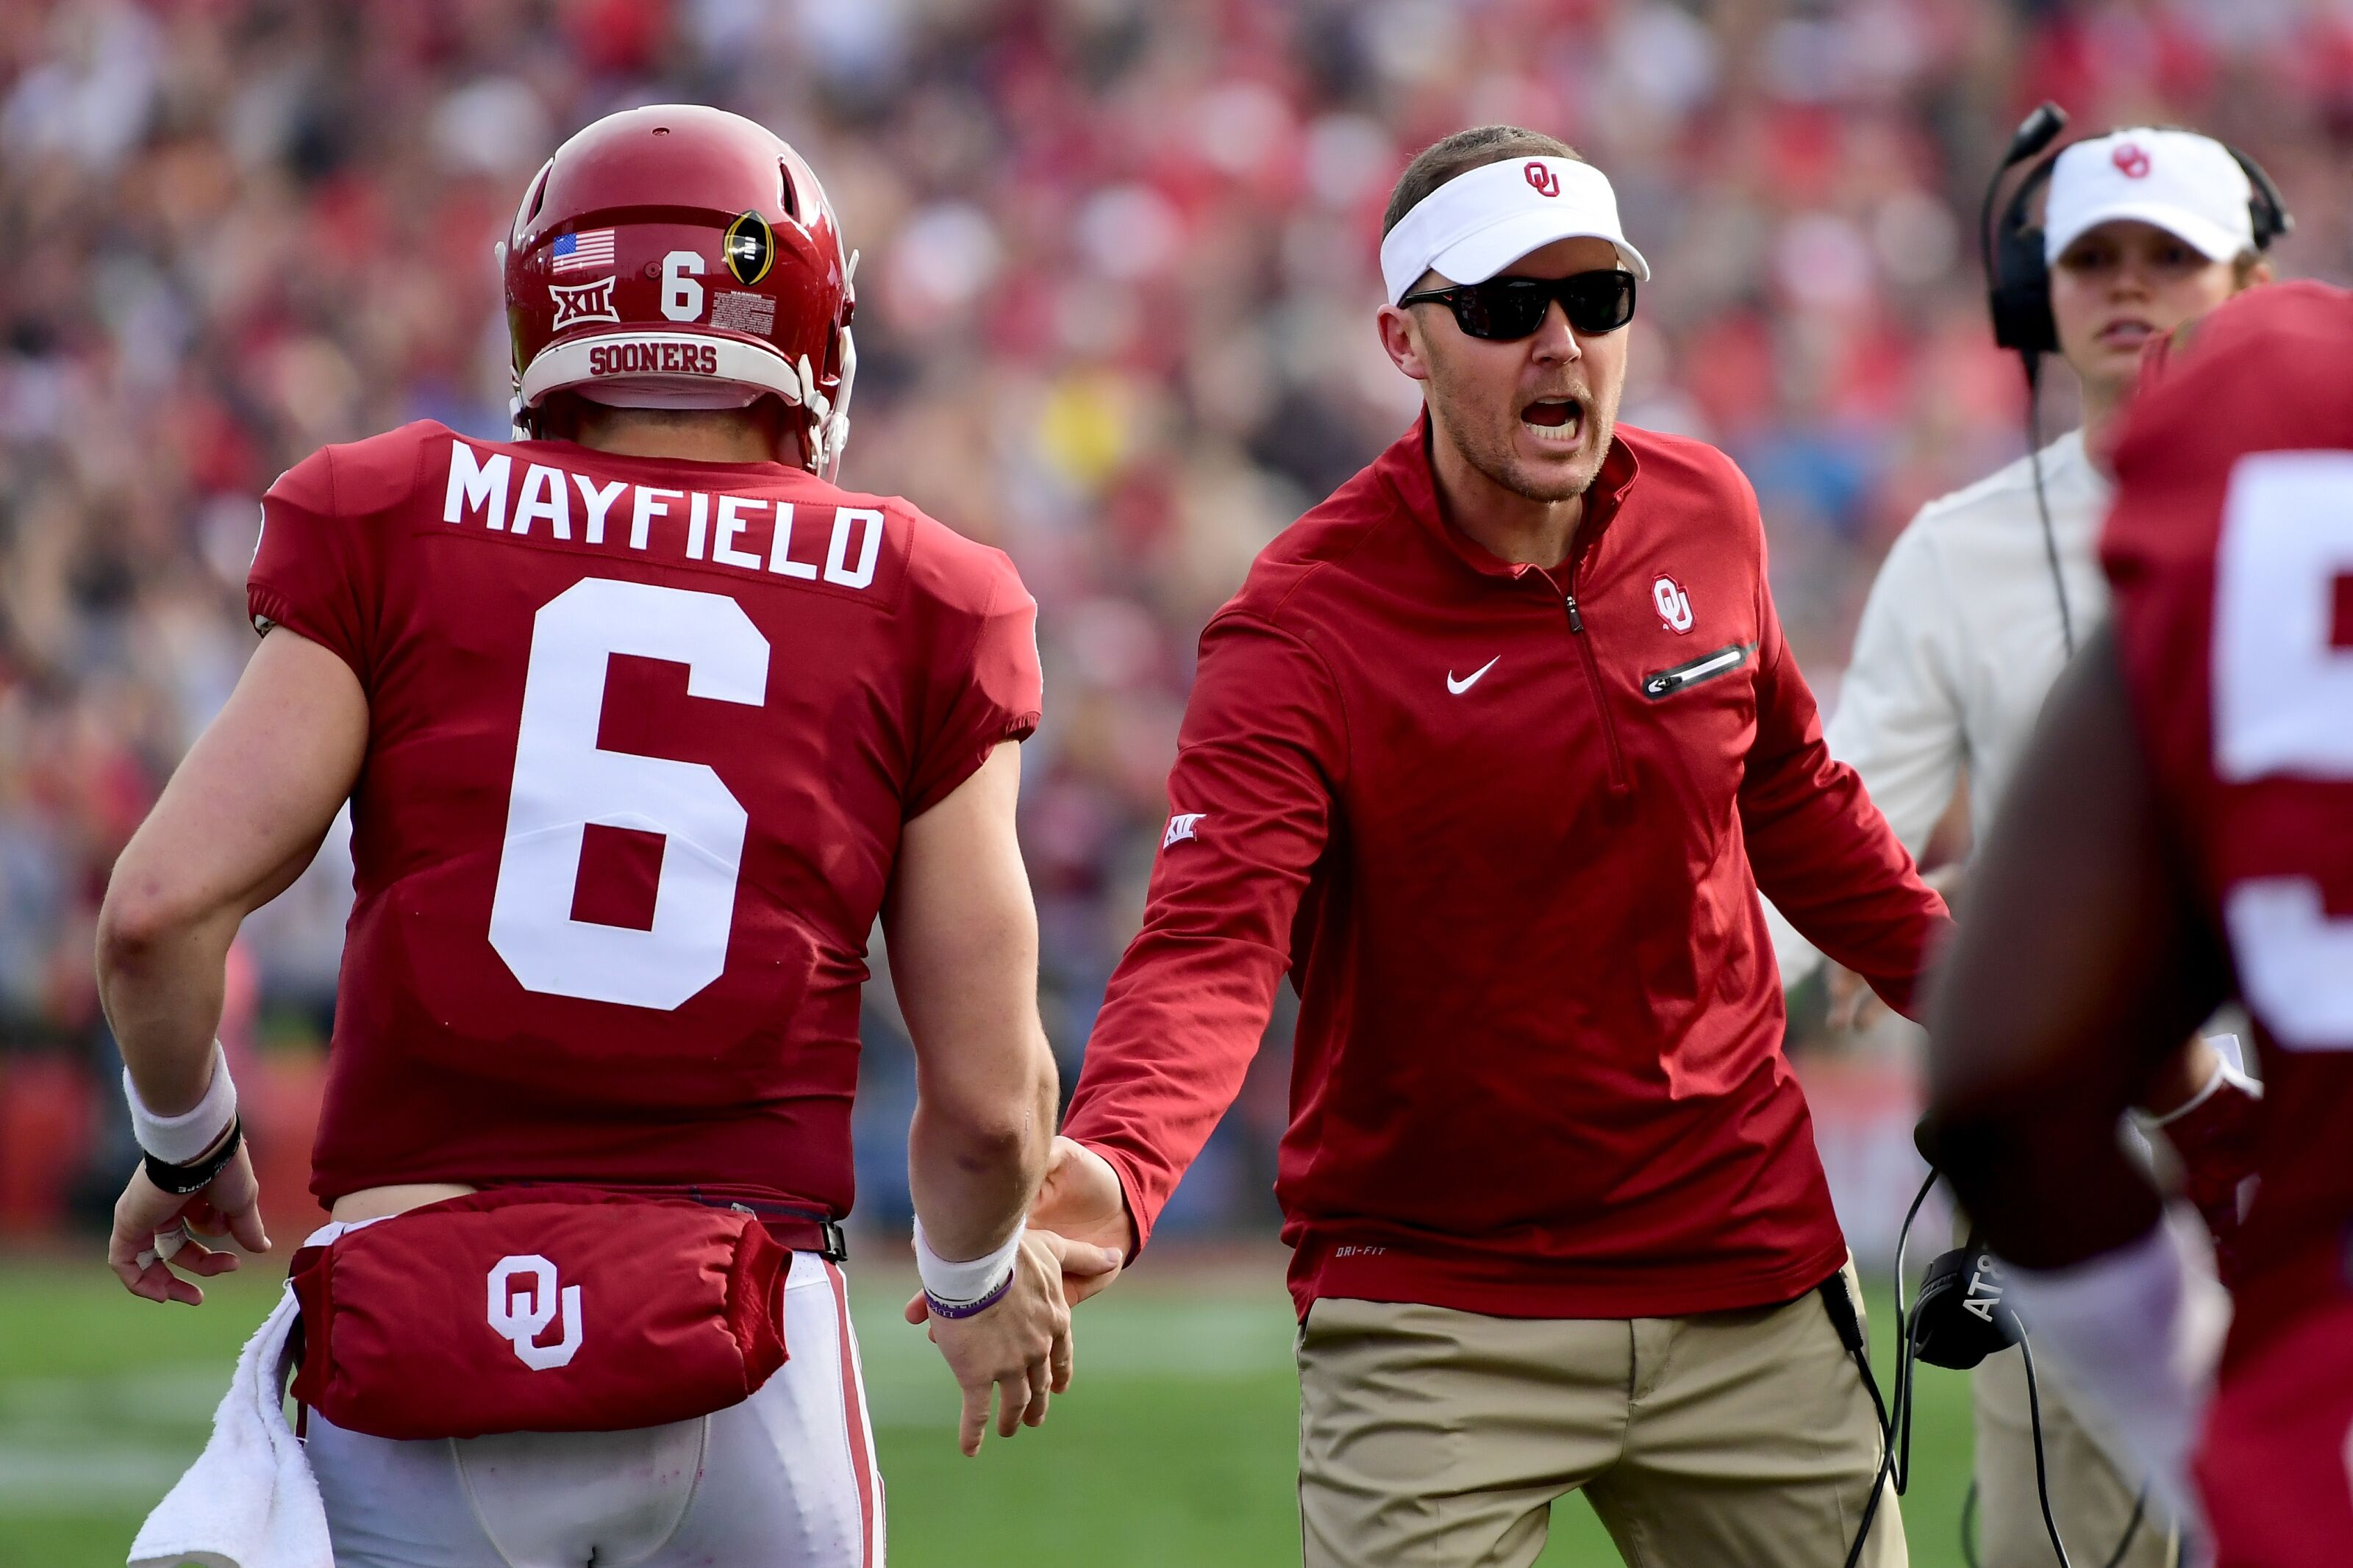 Oklahoma football: Lincoln Riley's legacy is just dawning